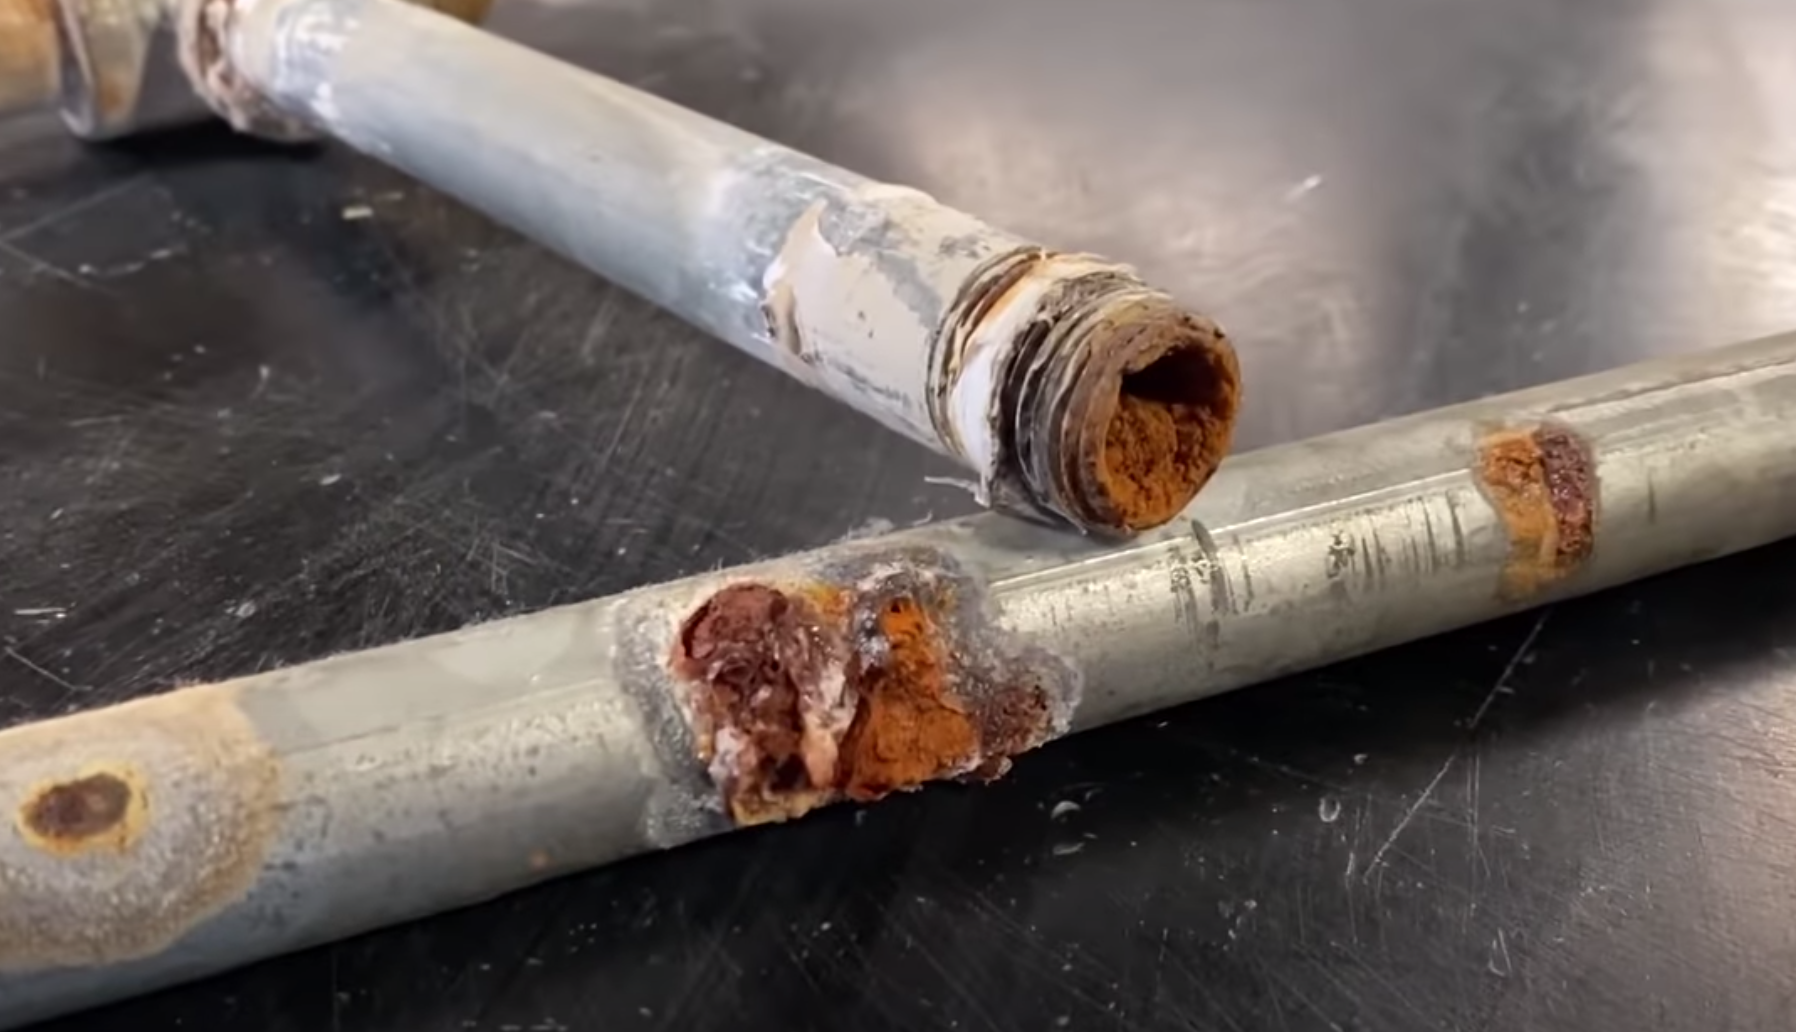 YouTubers Cut Open A Leaking Water Pipe, And Yup, It's Pretty Gross